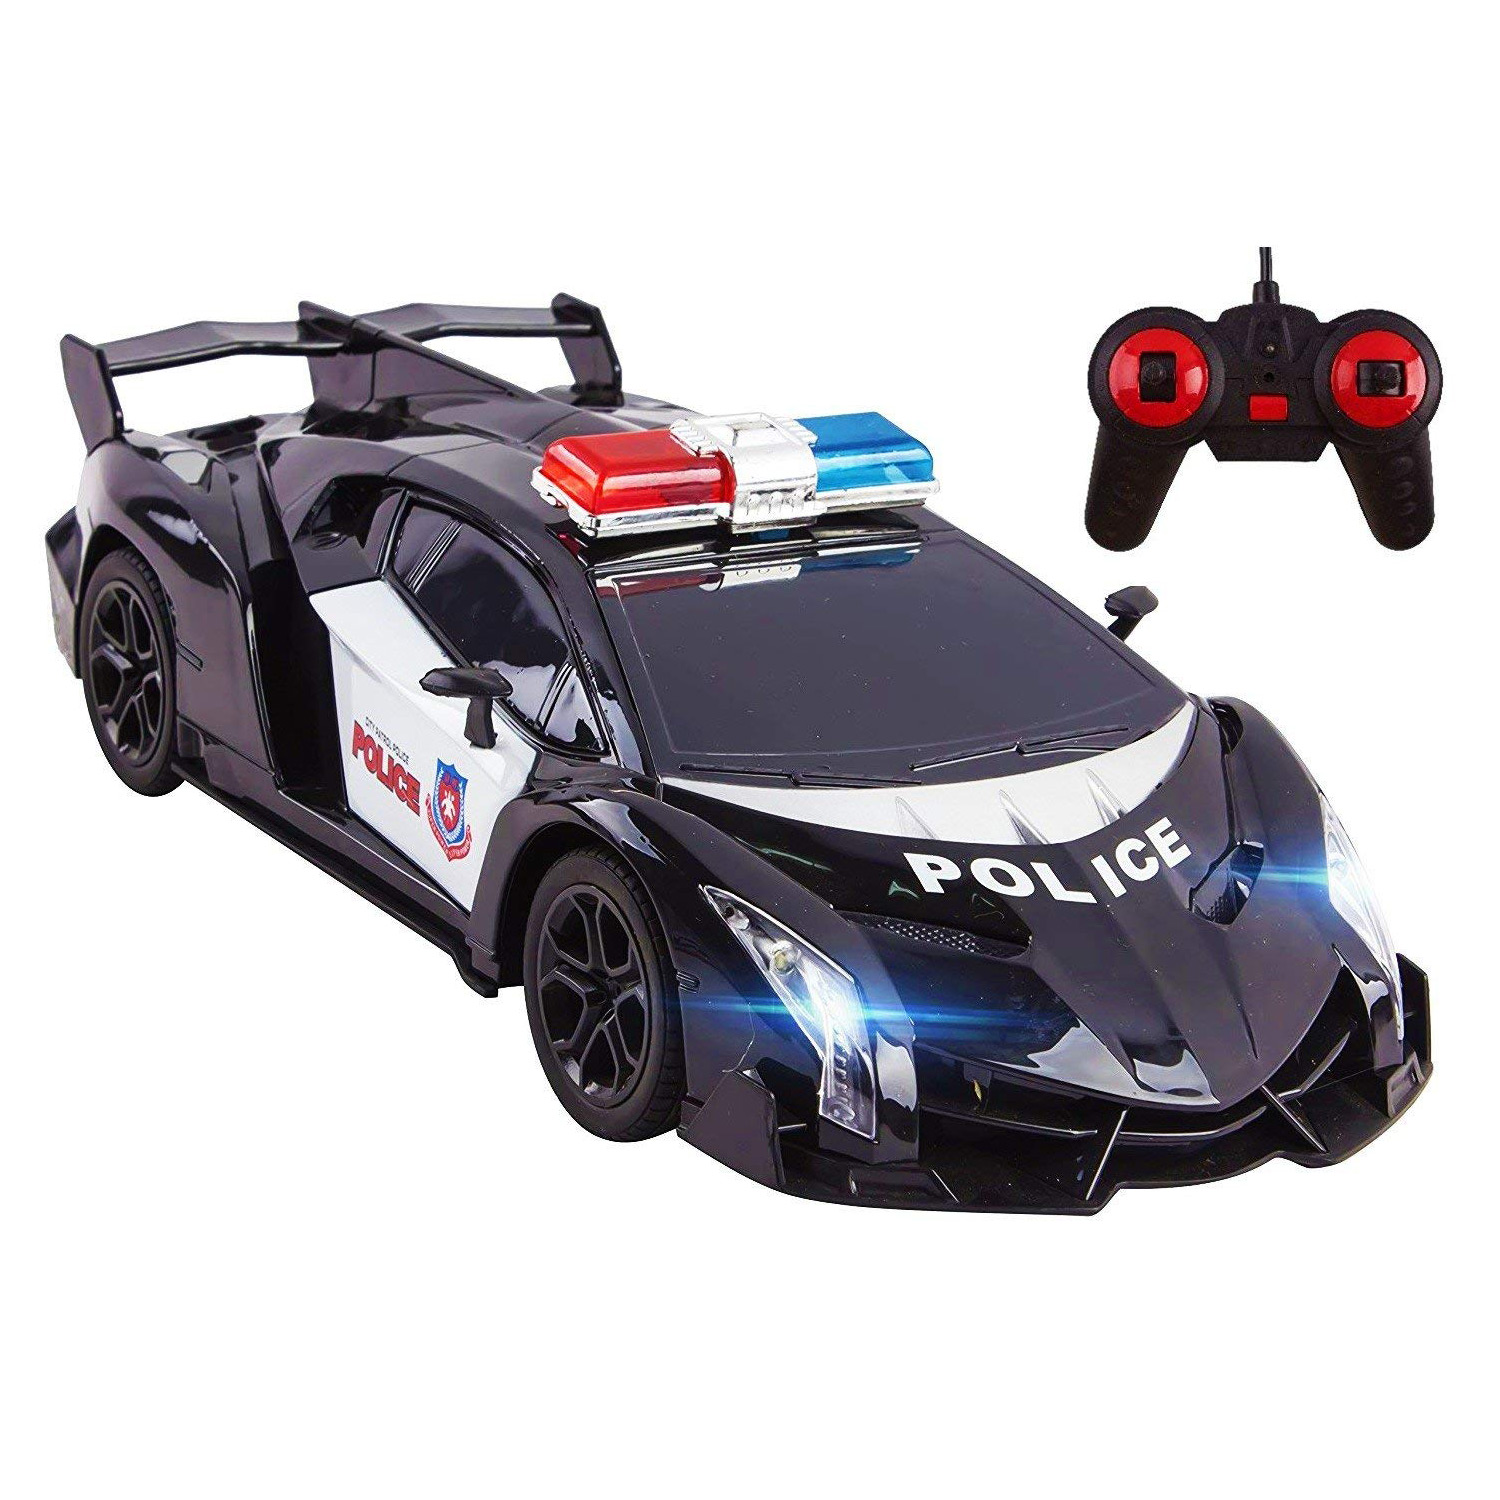 Police RC Car Super Exotic Large 1:16 Scale Size Kids Remote Control Easy To Operate Toy Sports Cars With Functional LED Headlights Perfect Cop Race Vehicle Full Function (Black)